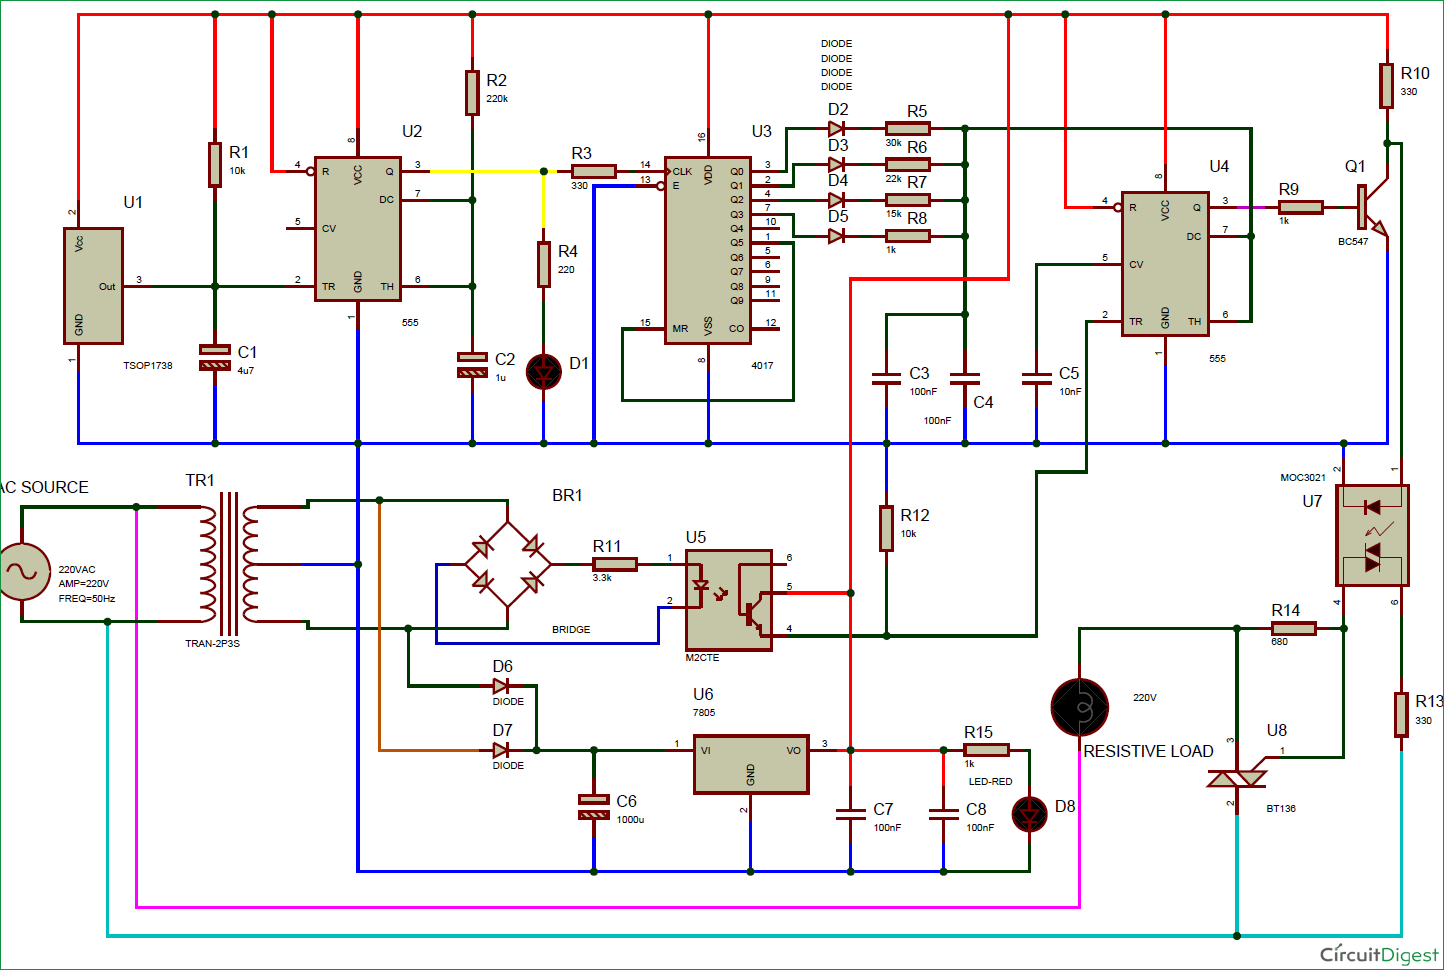 ir light dimmer circuit diagram for household schematic diagramir light dimmer circuit diagram for household box wiring diagramir remote controlled triac ac light dimmer